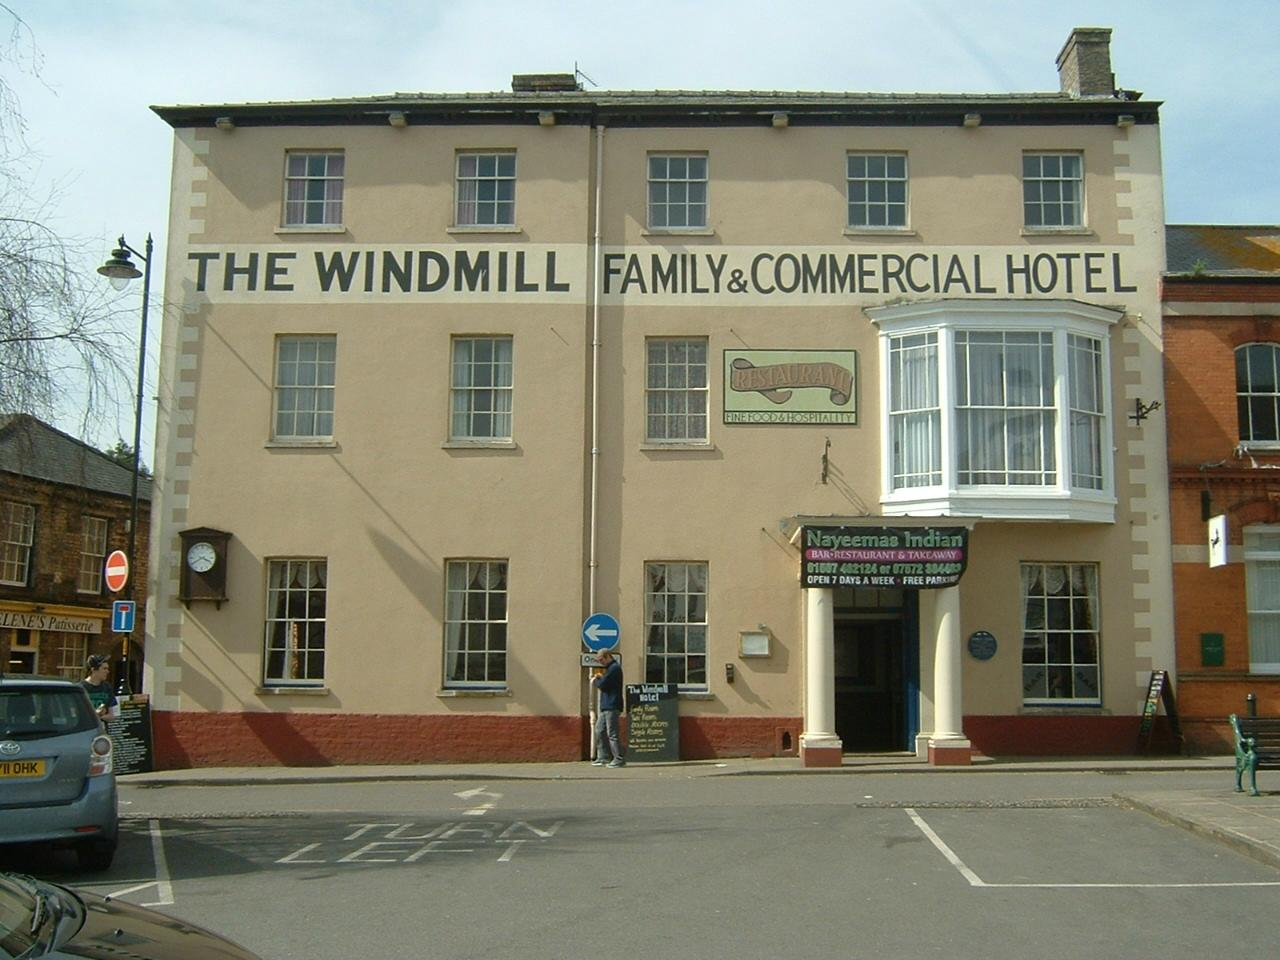 The Windmill Family & Commercial Hotel